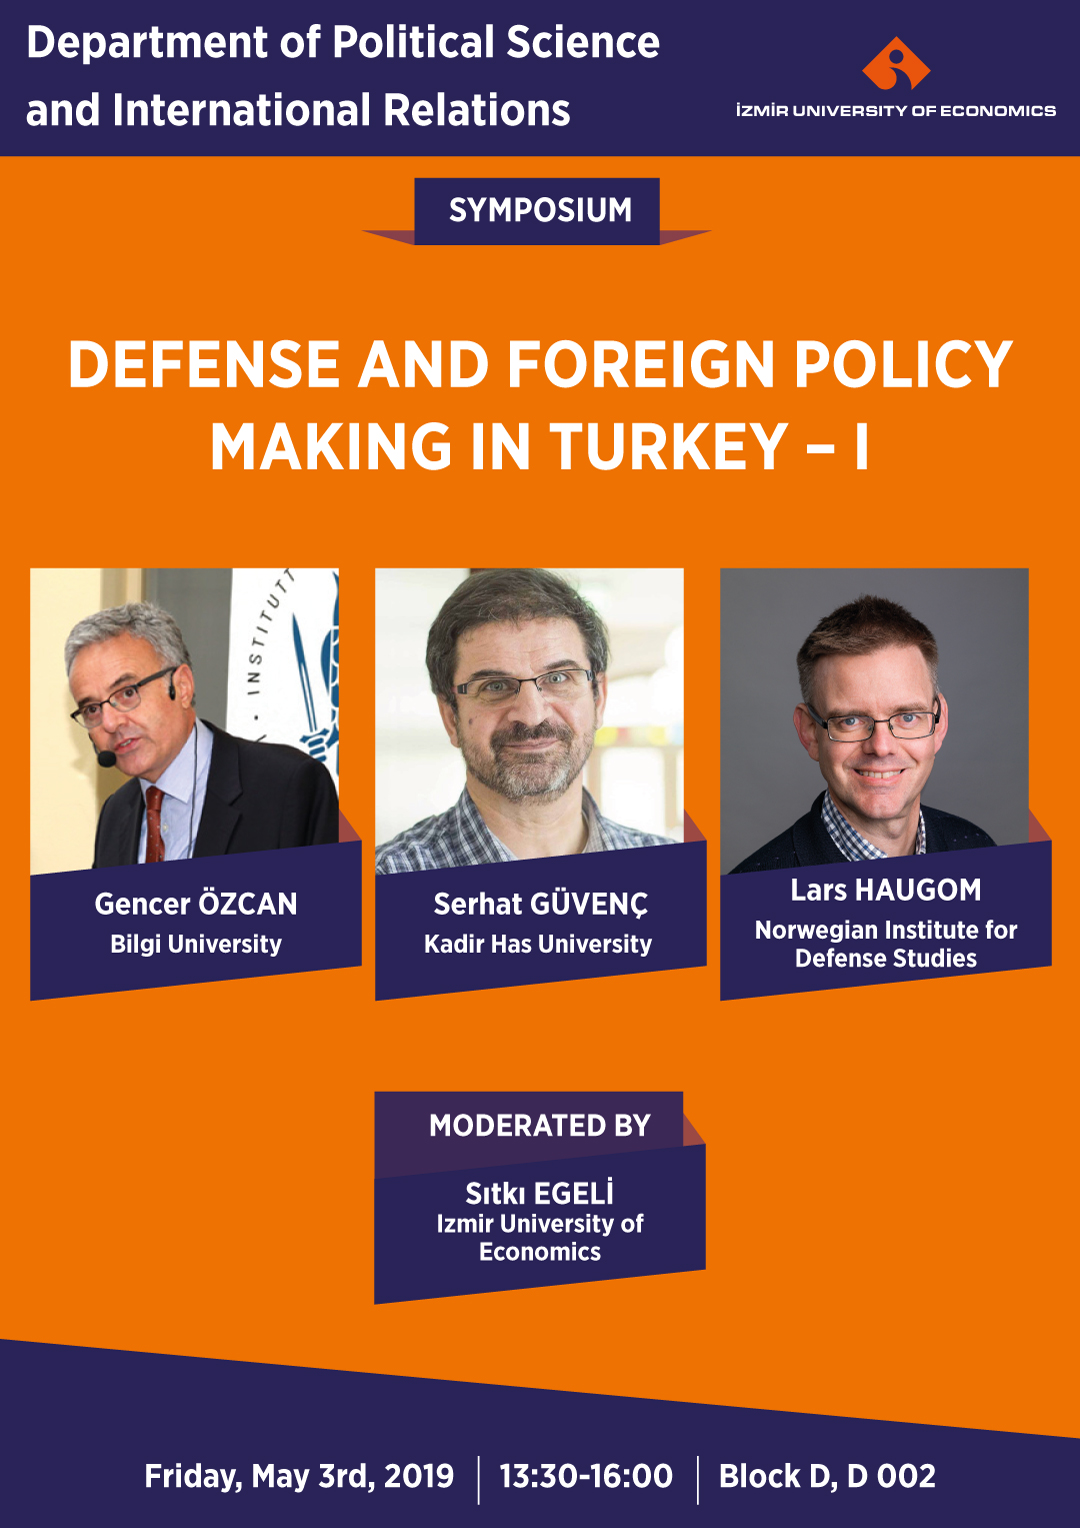 Defense and Foreign Policy Making in Turkey -I